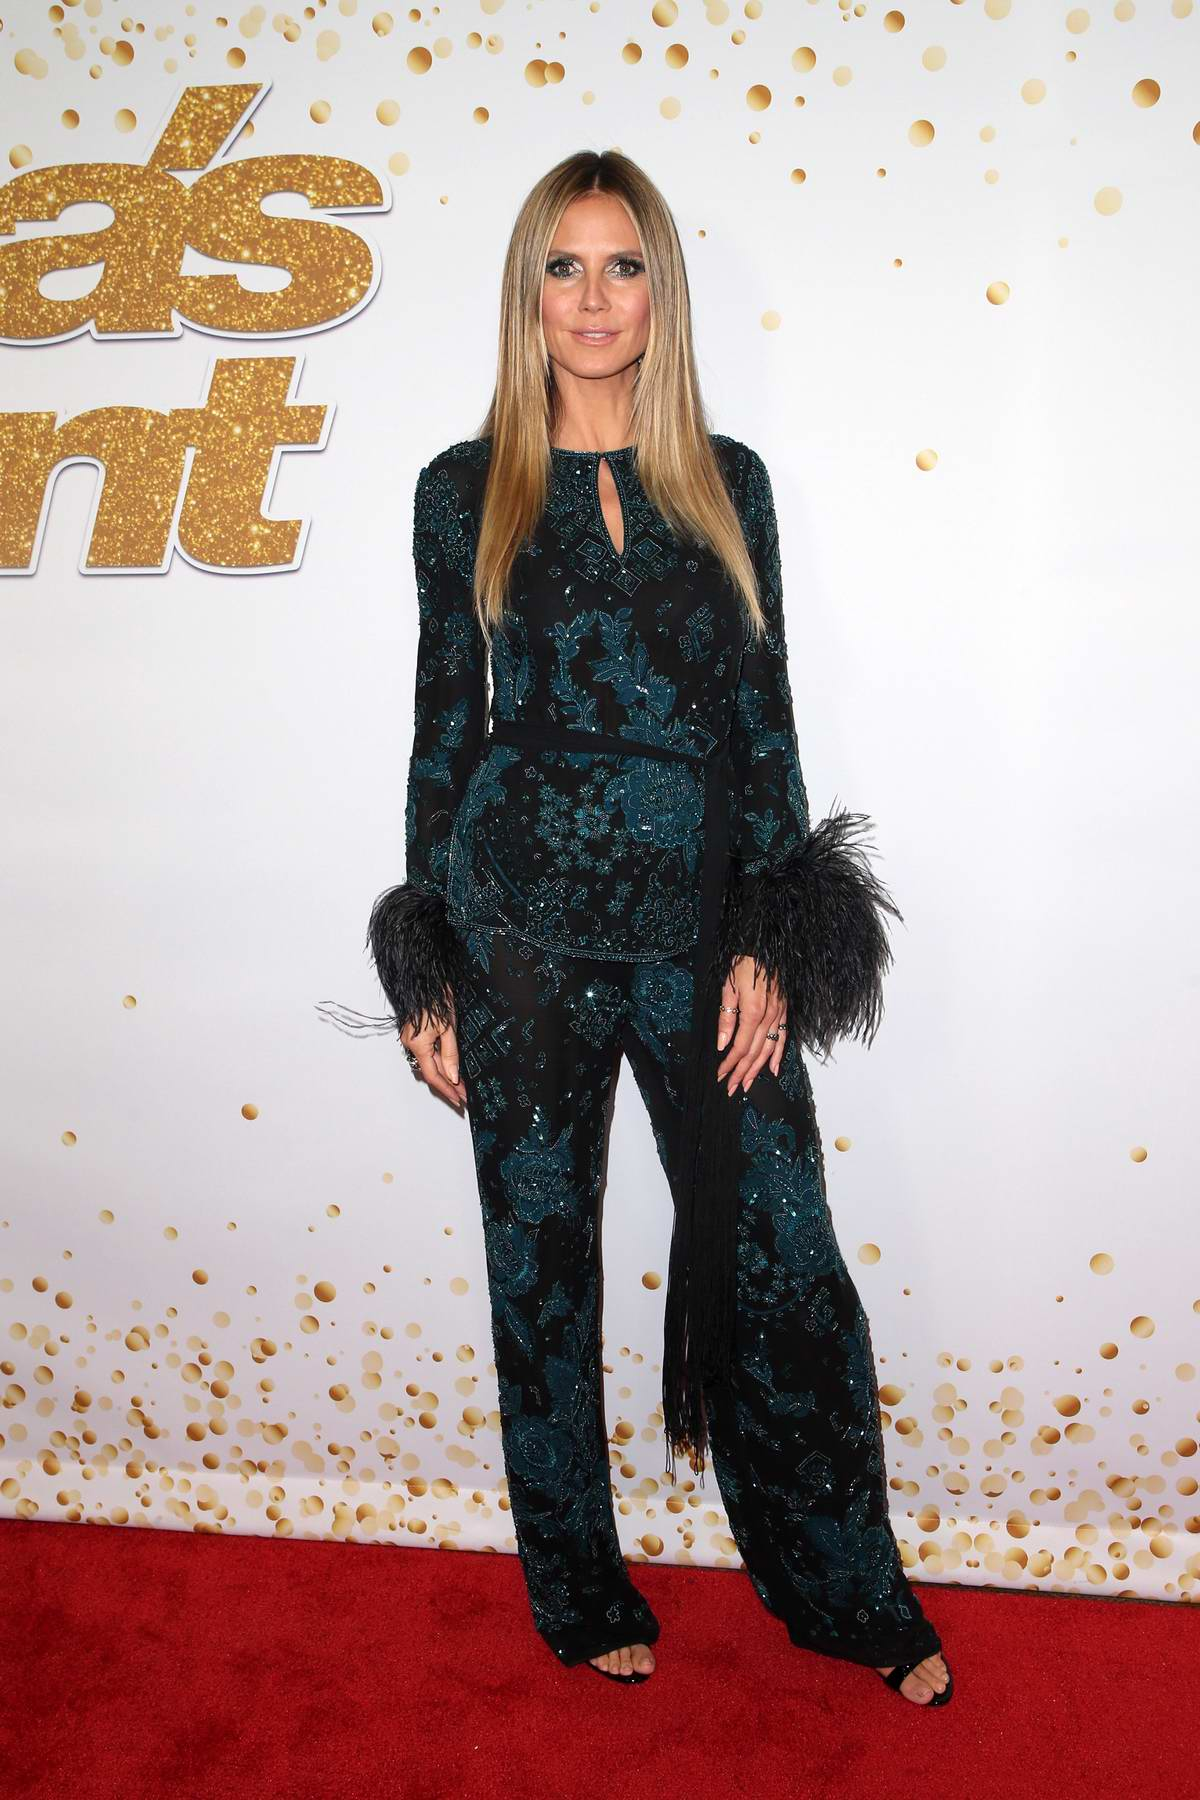 Heidi Klum attends America's Got Talent, Season 13 live show finals at the Dolby Theater in Hollywood, Los Angeles